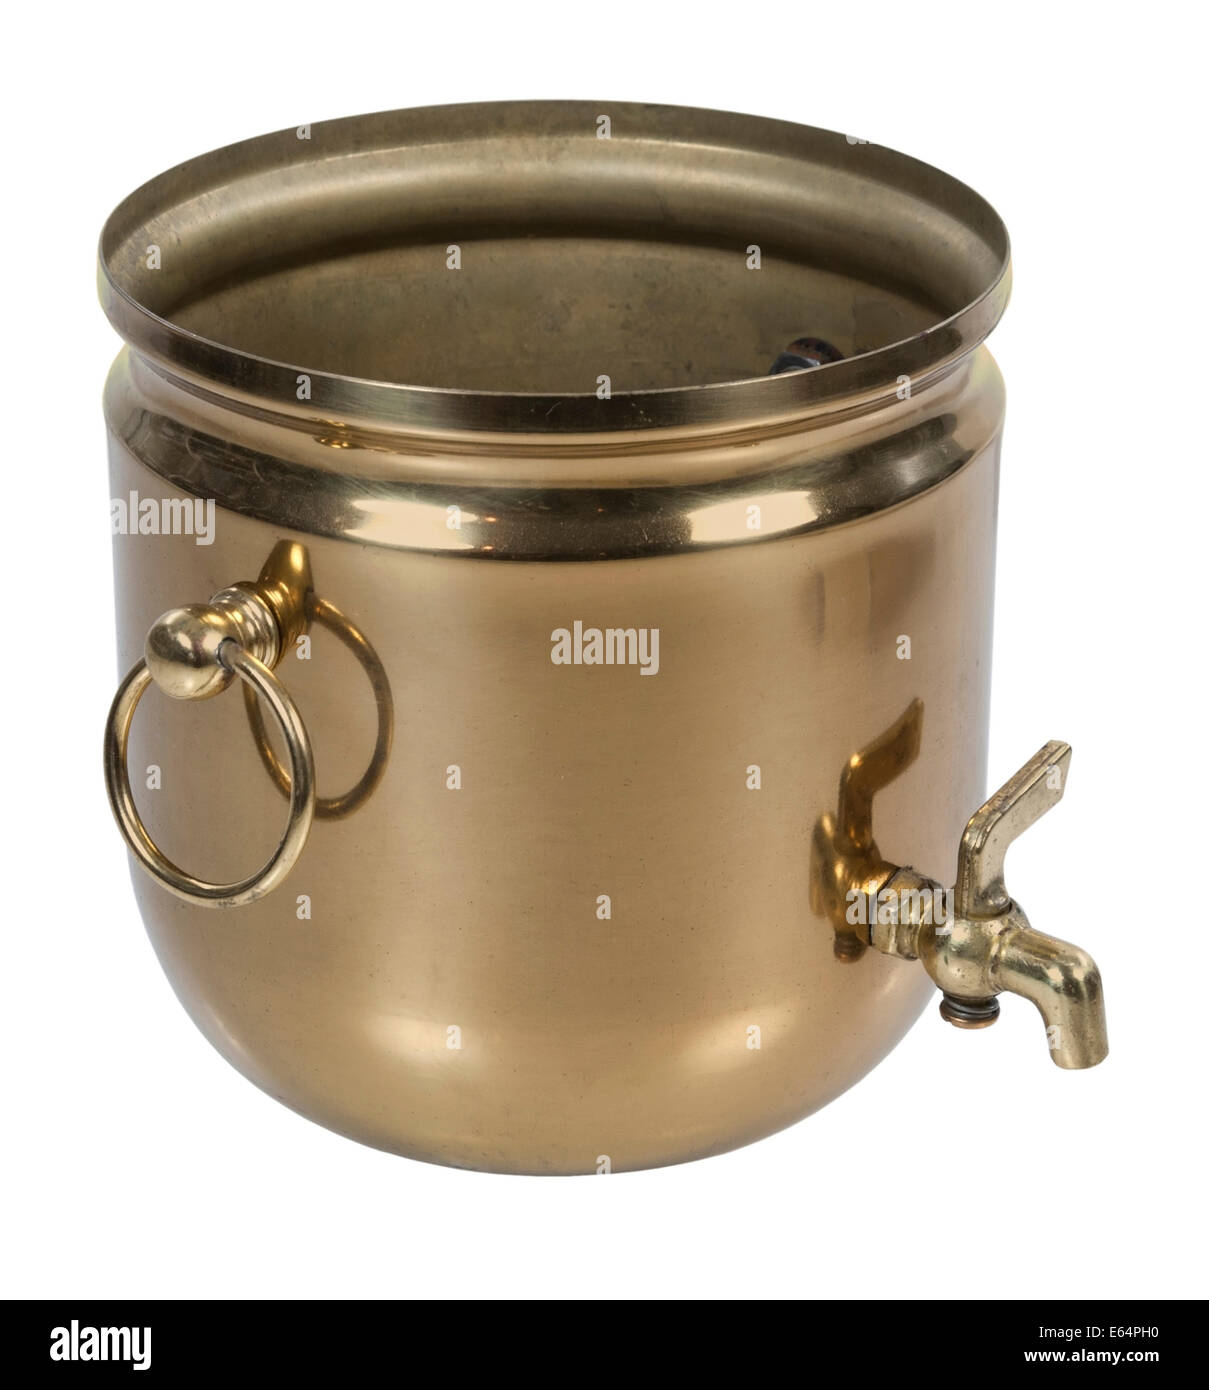 Brass bucket with spigot for carrying and pouring water - path included - Stock Image